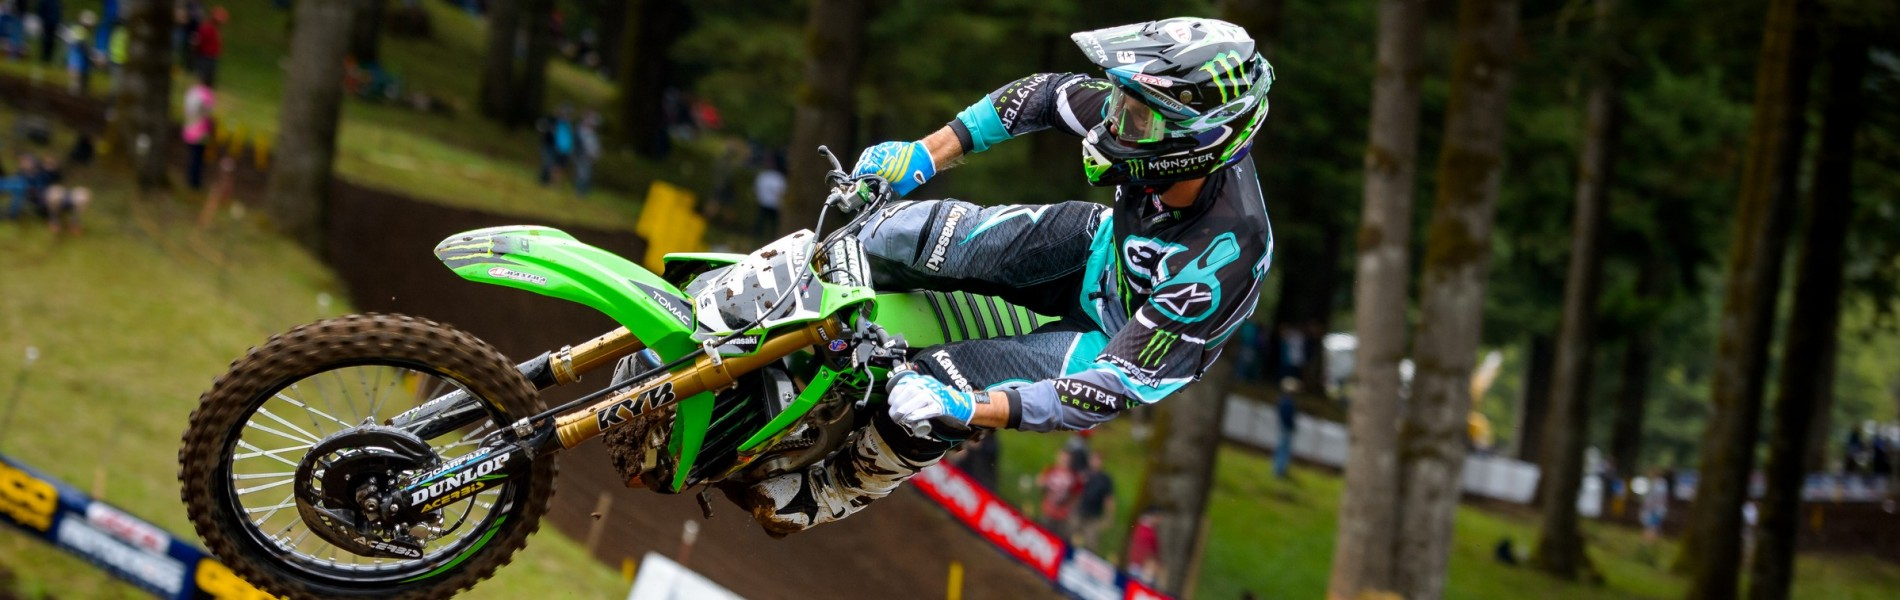 Round 9 of the 2016 Pro Motocross Championship Series in Washougal, WA